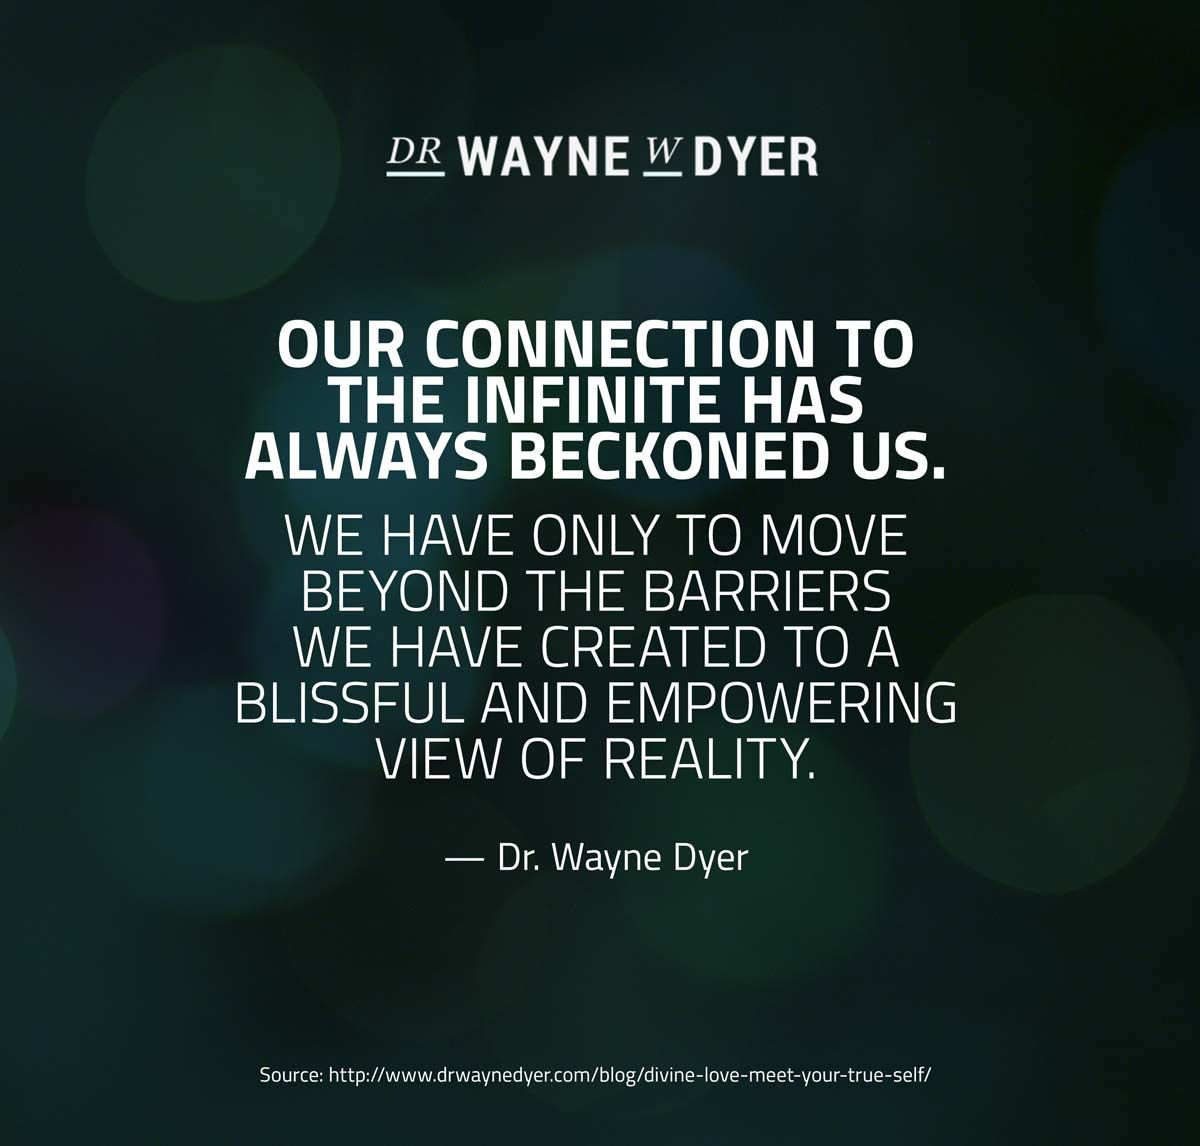 Divine Love Quotes Wayne Dyer  Divine Love  How To Meet Your True Self  Wayne Dyer